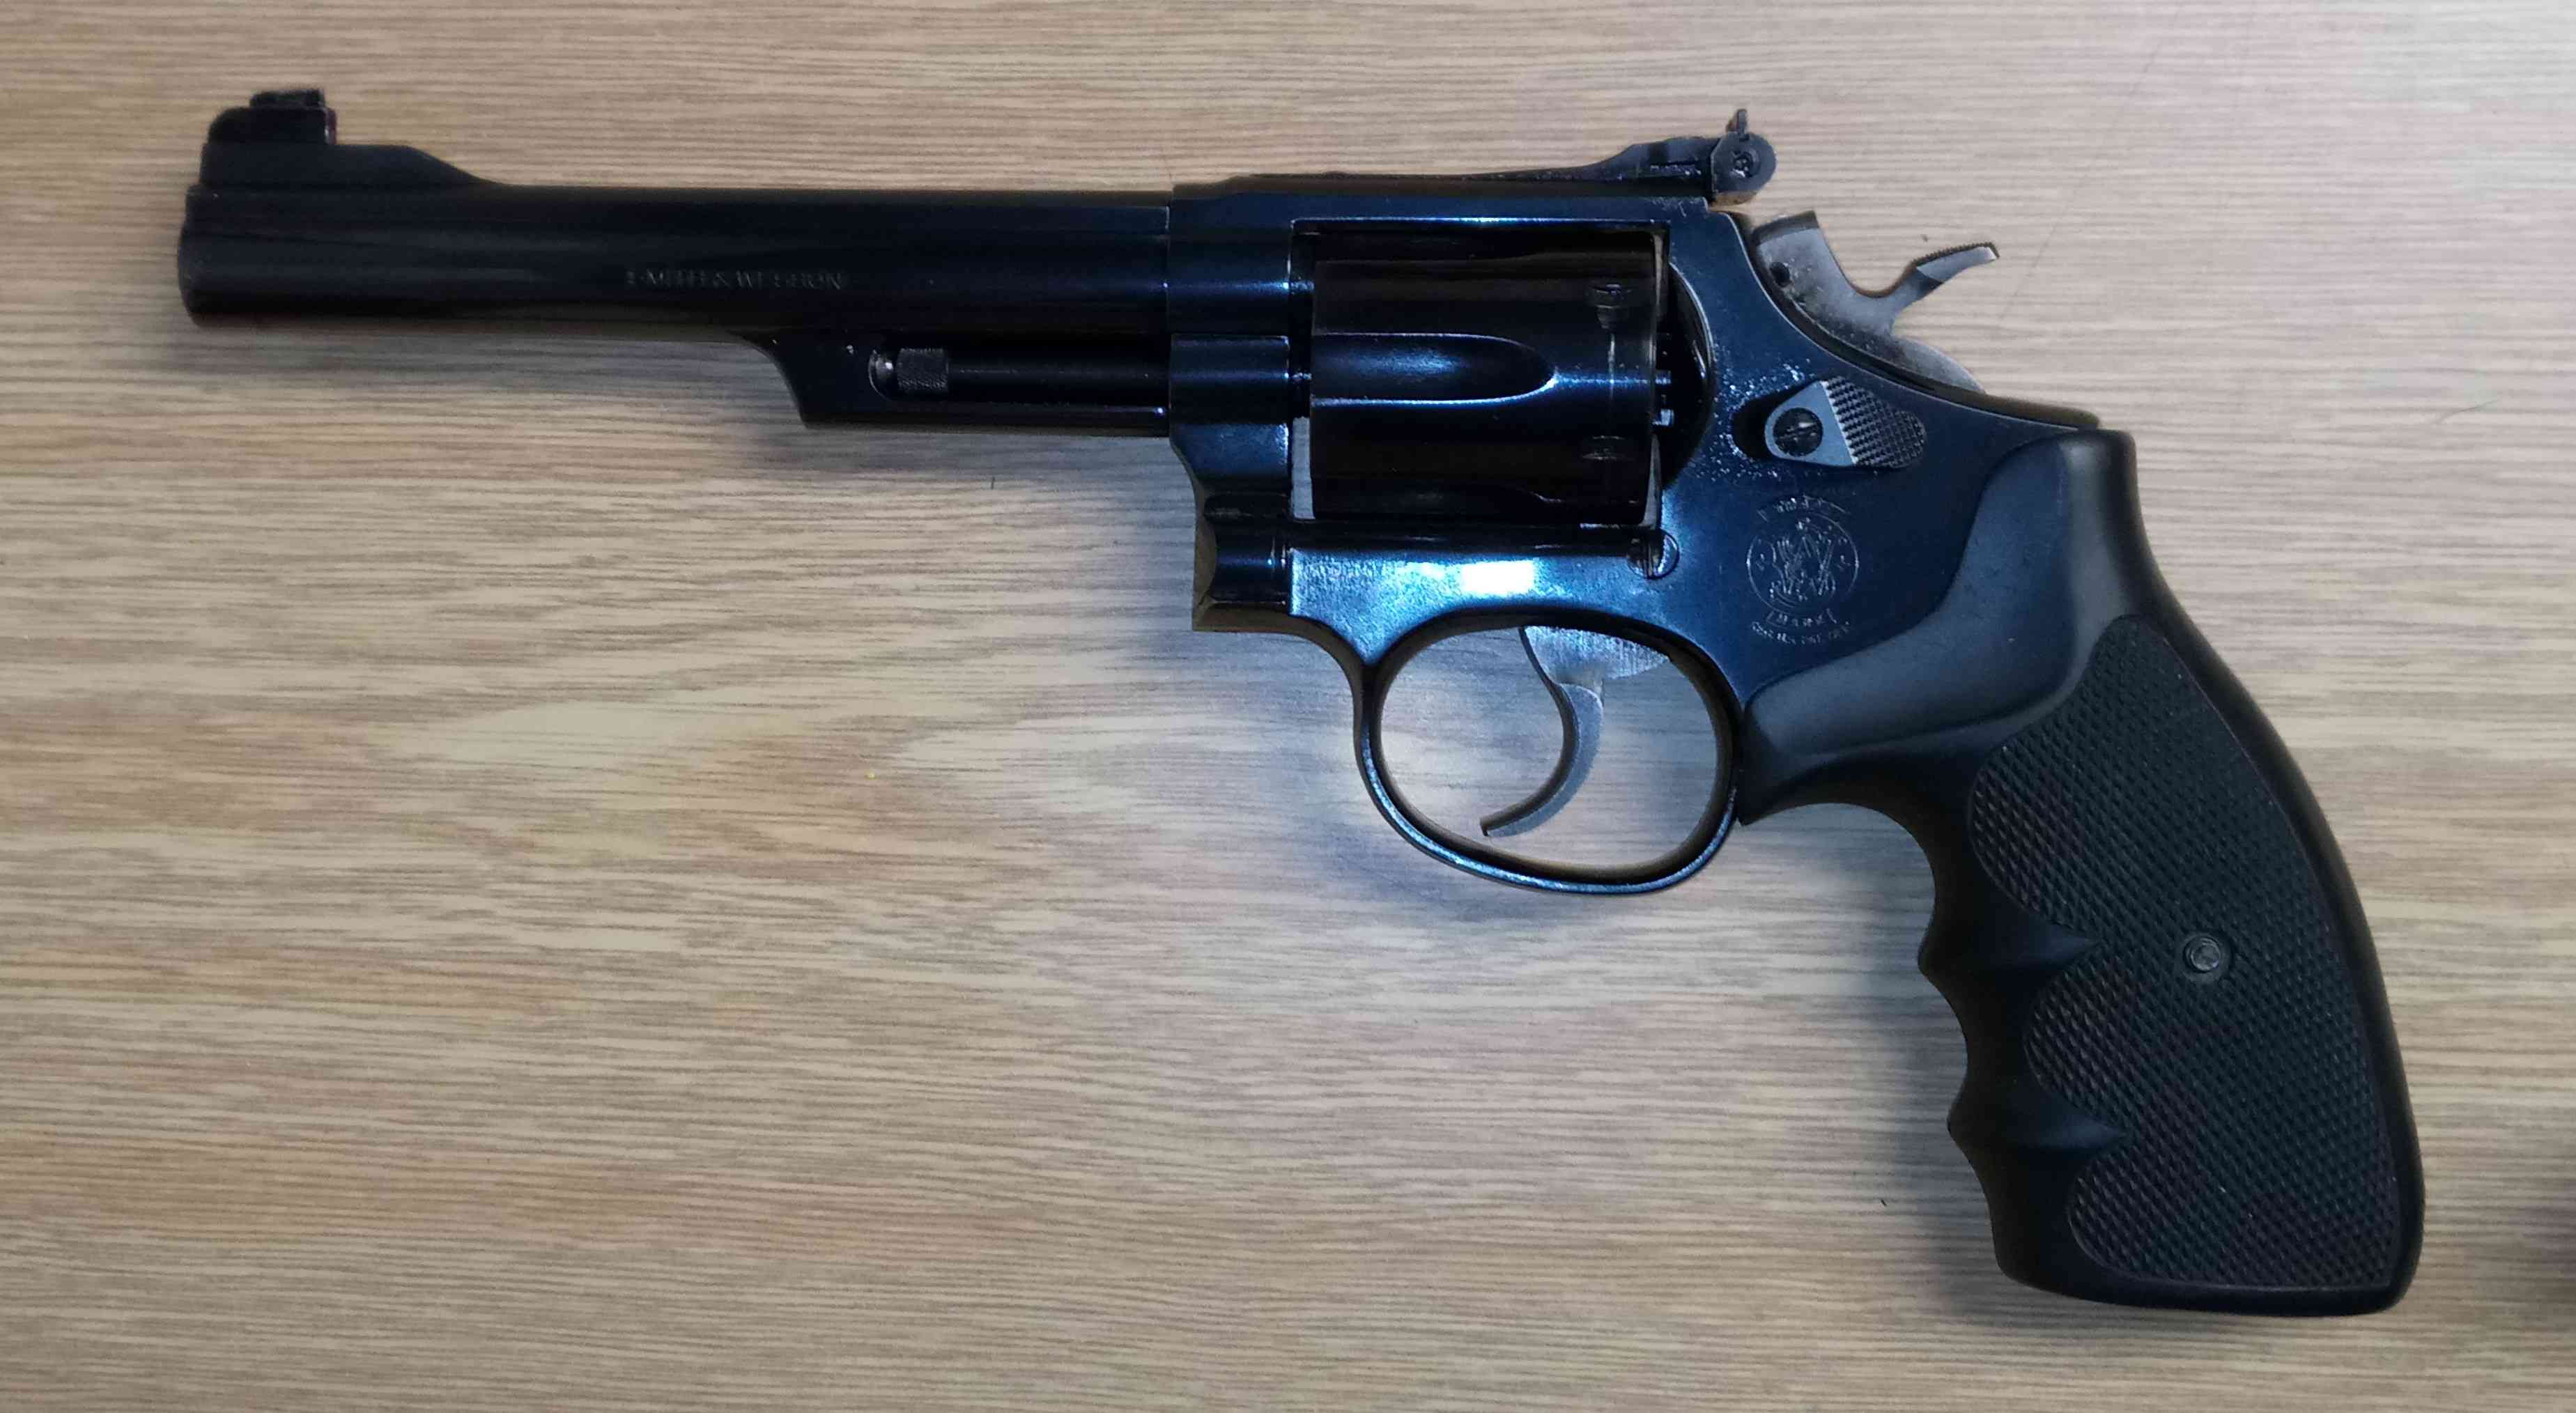 Revolver 19-7 SMITH & WESSON, .357 Magnum